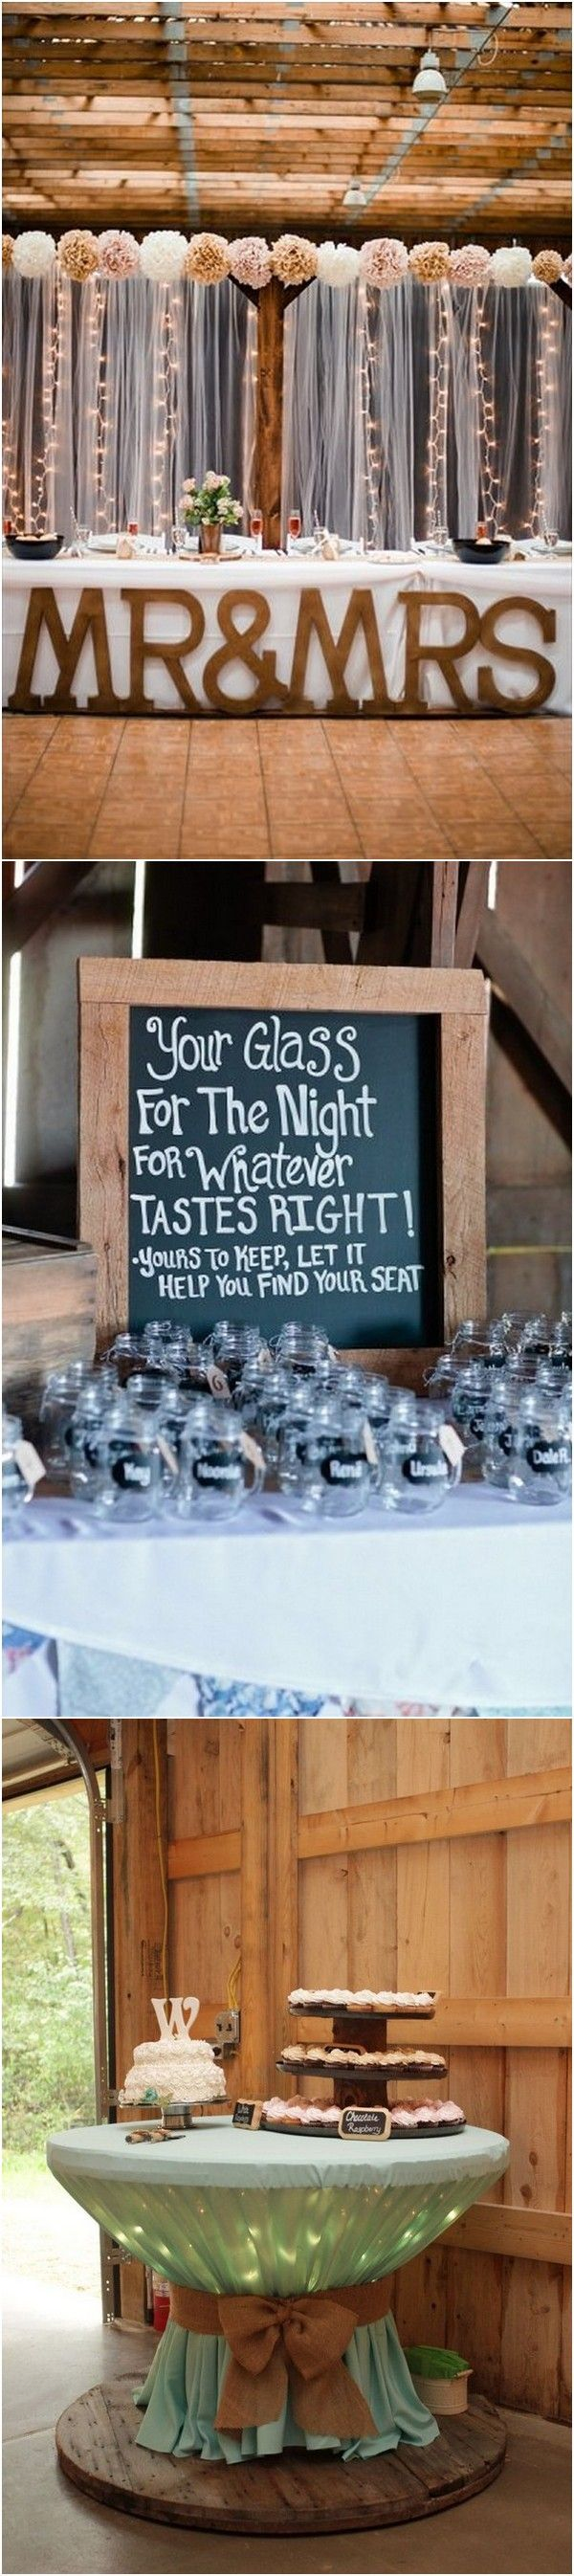 Barn wedding decoration ideas   Perfect Country Rustic Barn Wedding Decoration Ideas  Page  of